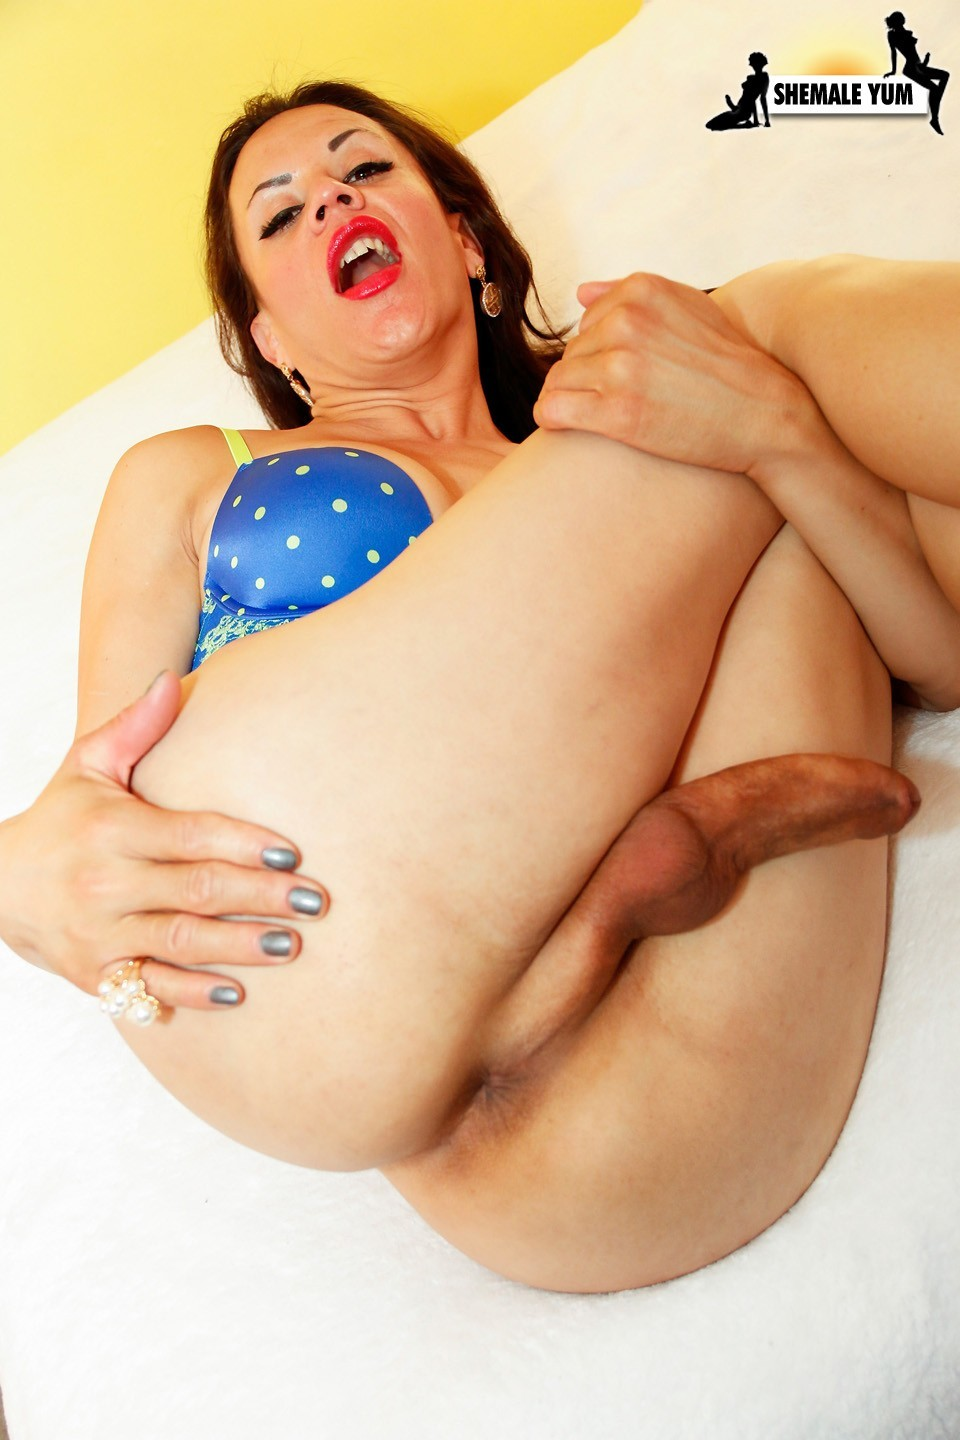 patricia fingering and stroking her dick in polka dot panties